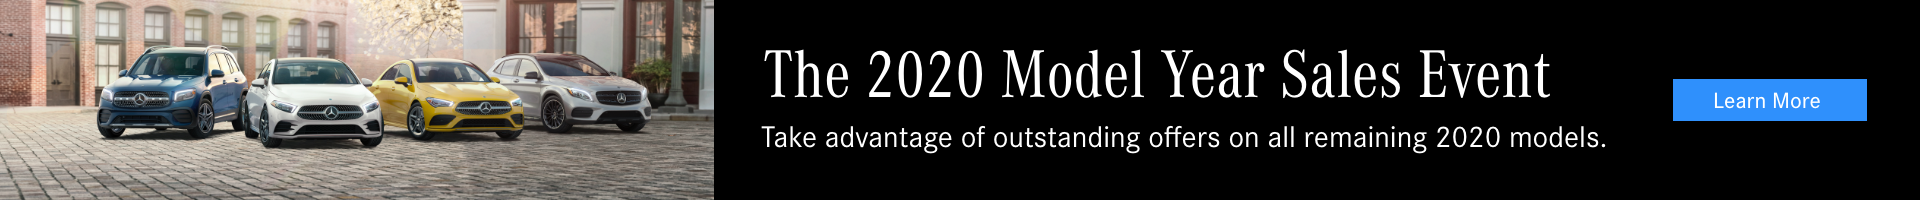 2020 Model Year Sales Event